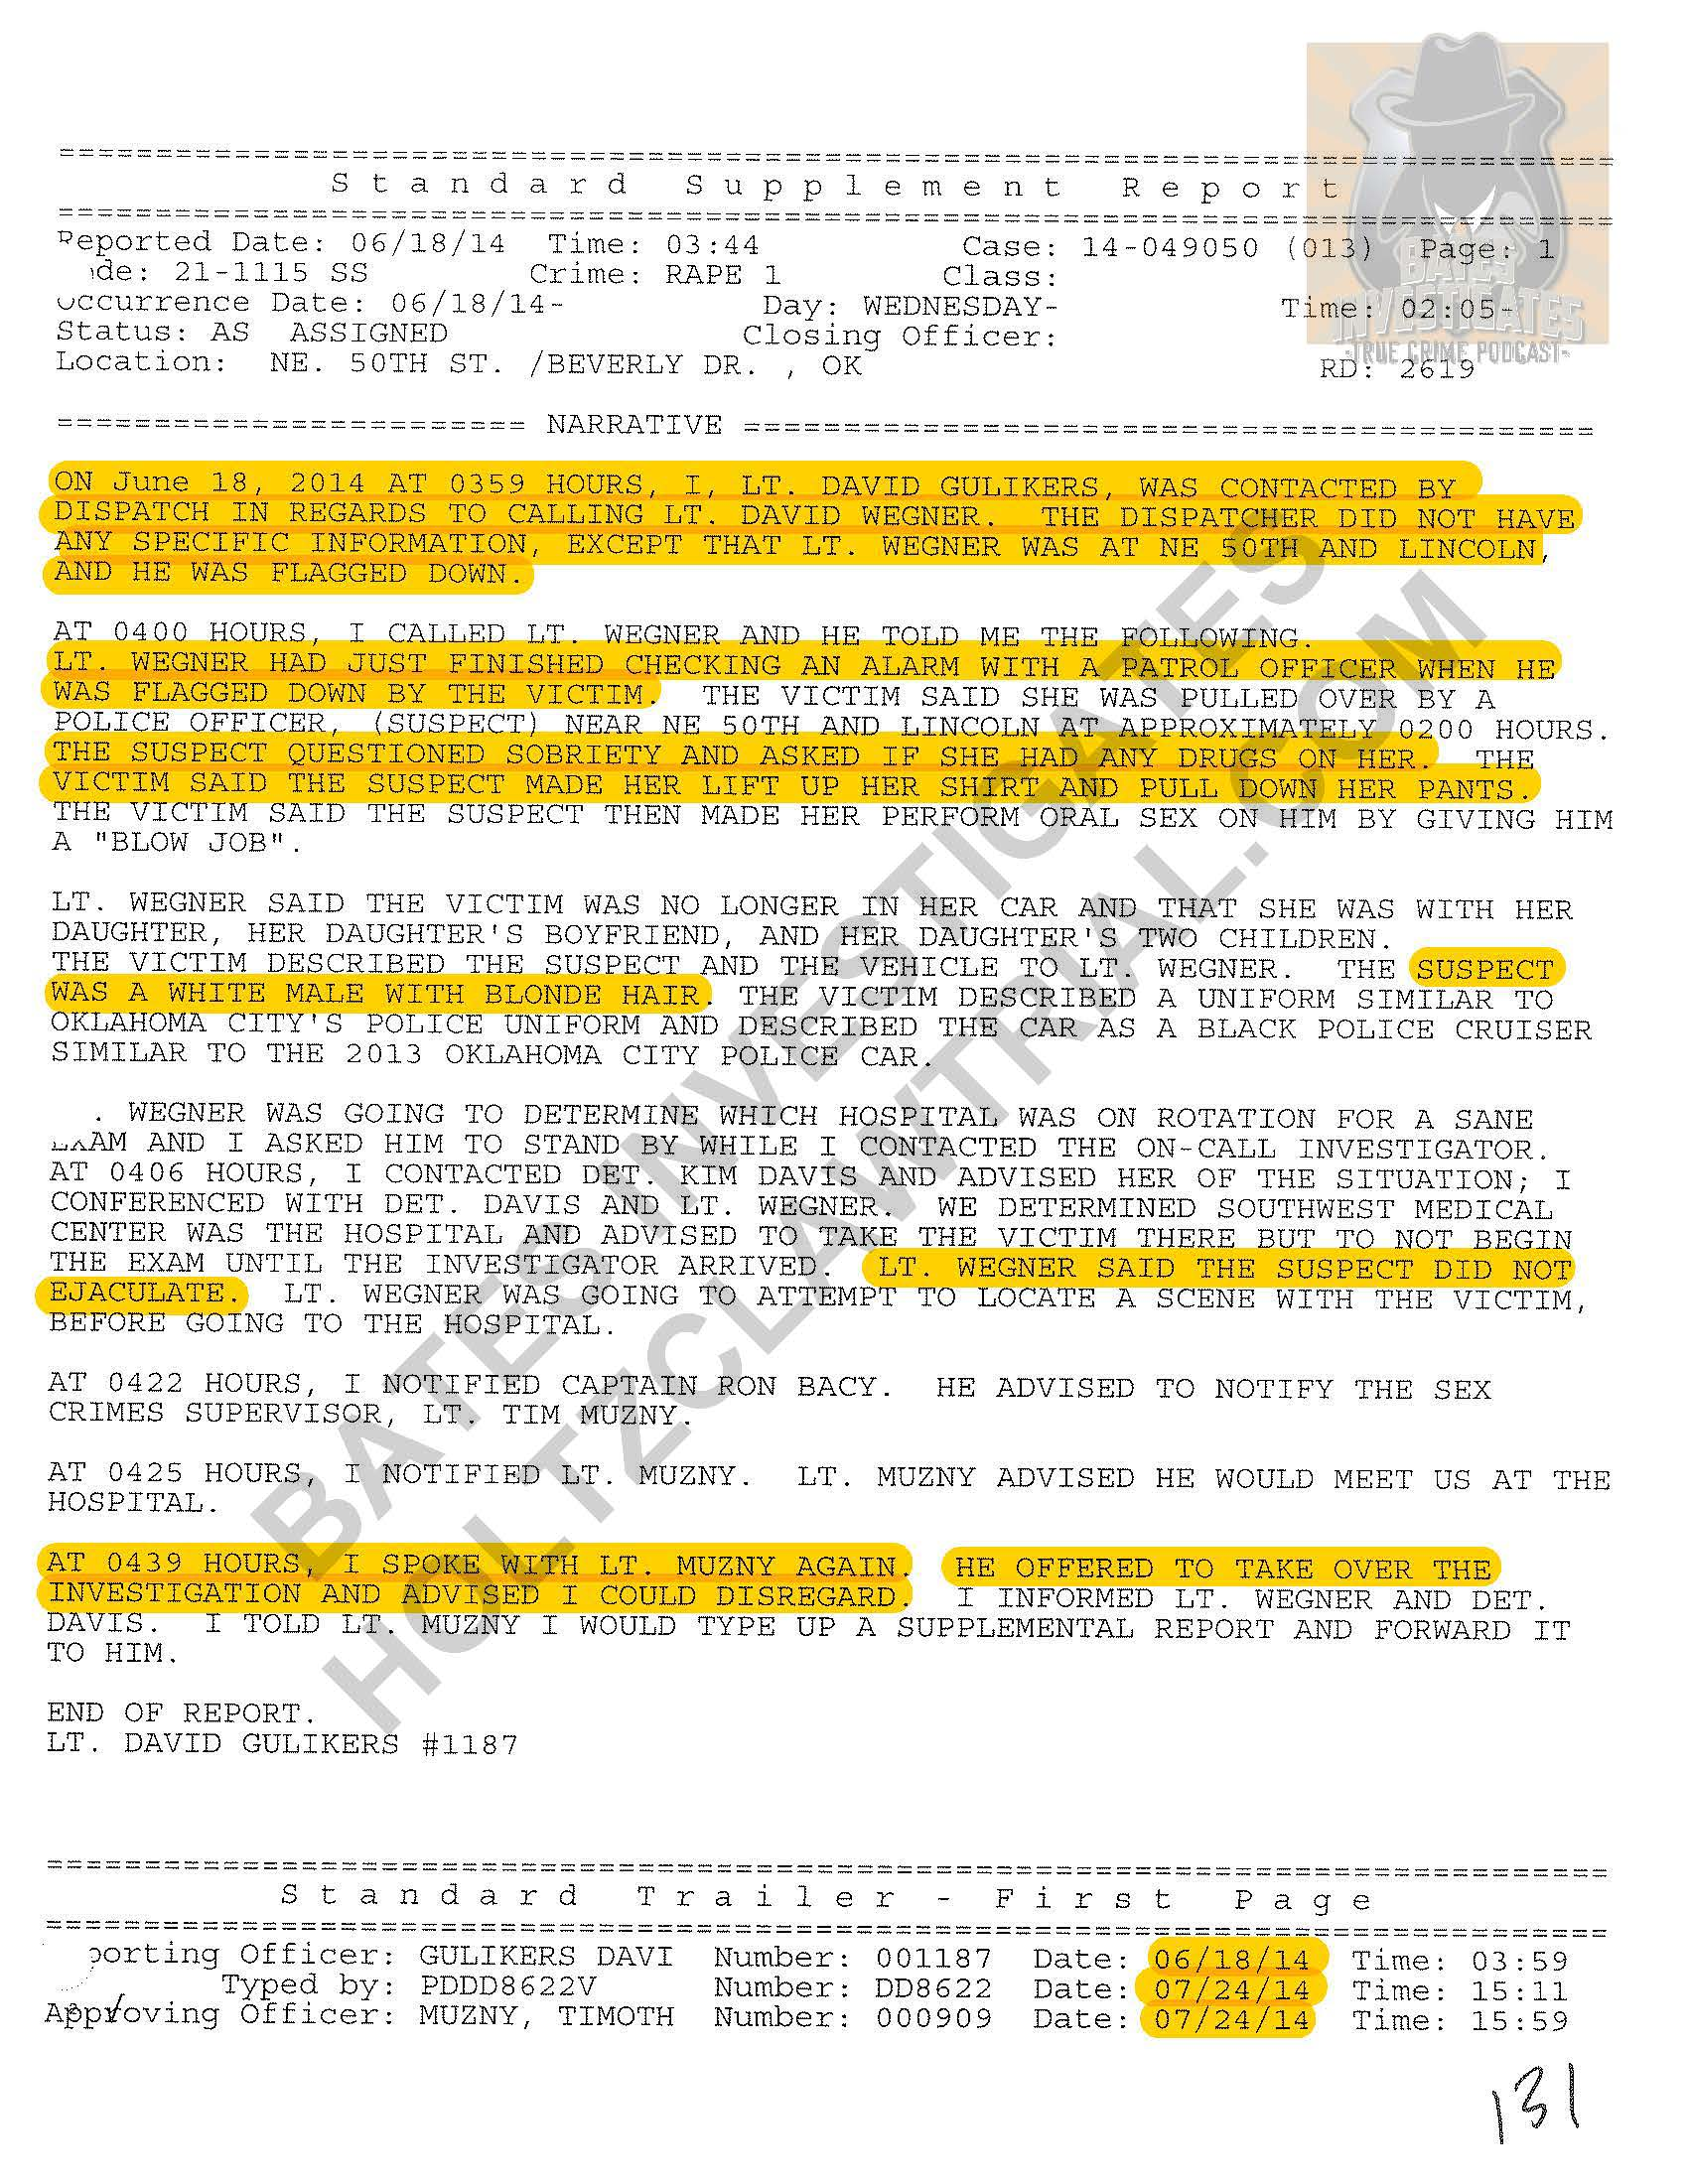 Holtzclaw - Ep02 - Police Reports Watermarked_Page_12.jpg